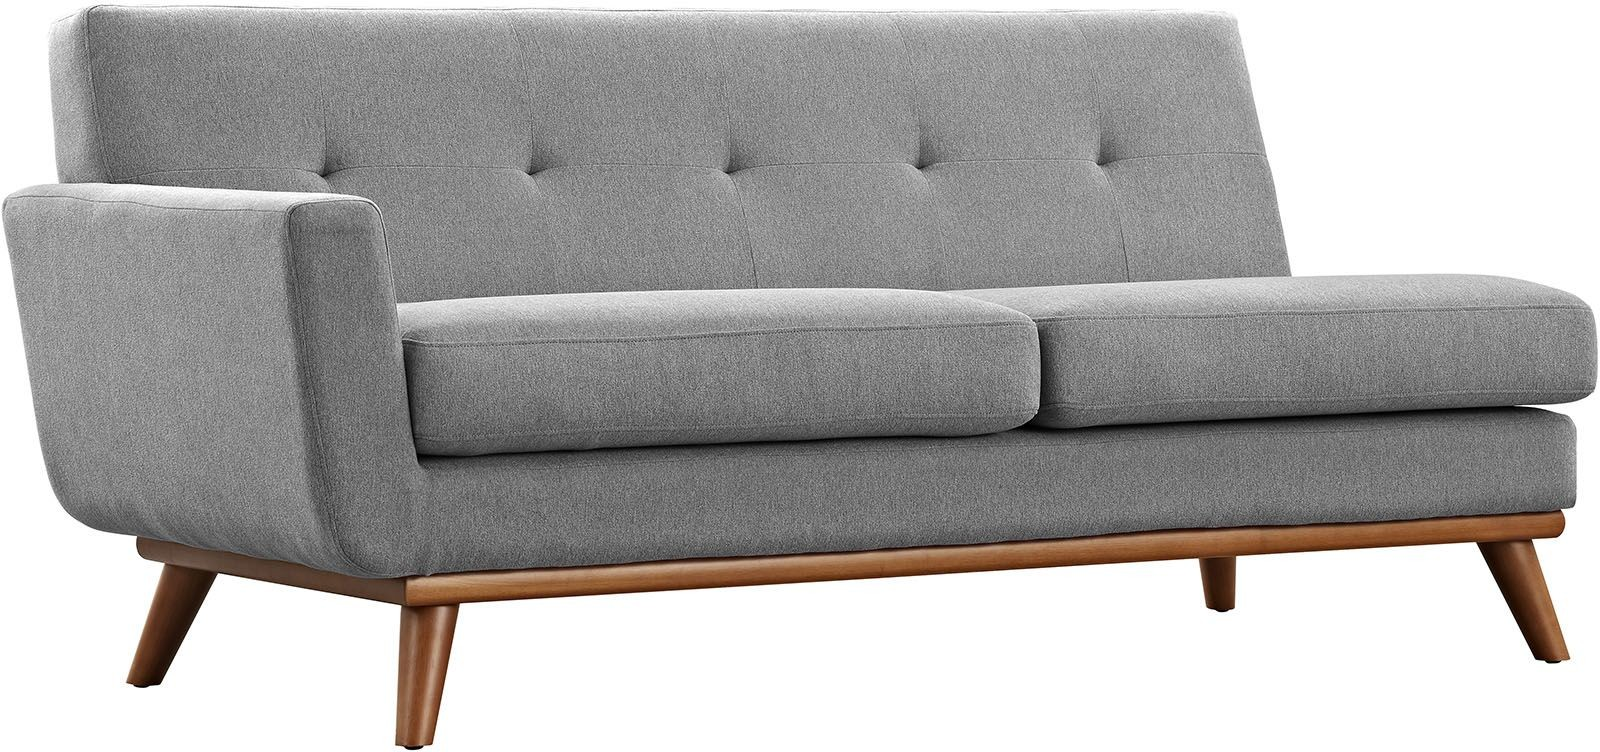 Engage gray 5 piece sectional sofa eei 2186 gry set for 5 piece grey sectional sofa